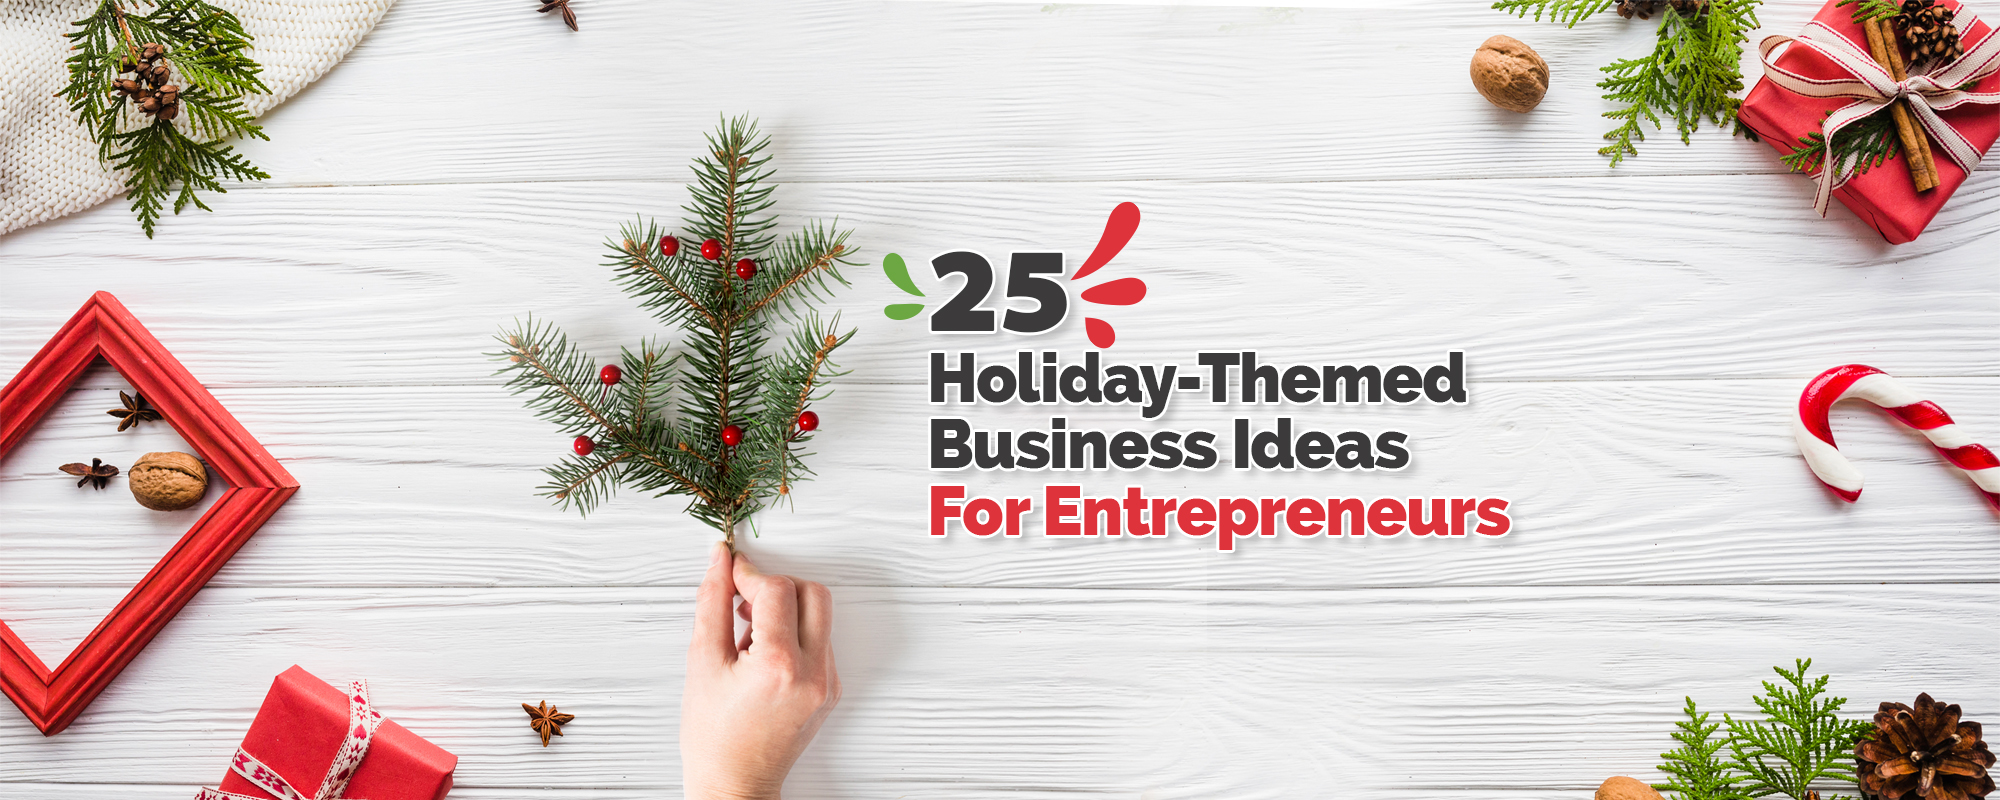 Winter is Coming: Holiday-themed Business Ideas for Entrepreneurs